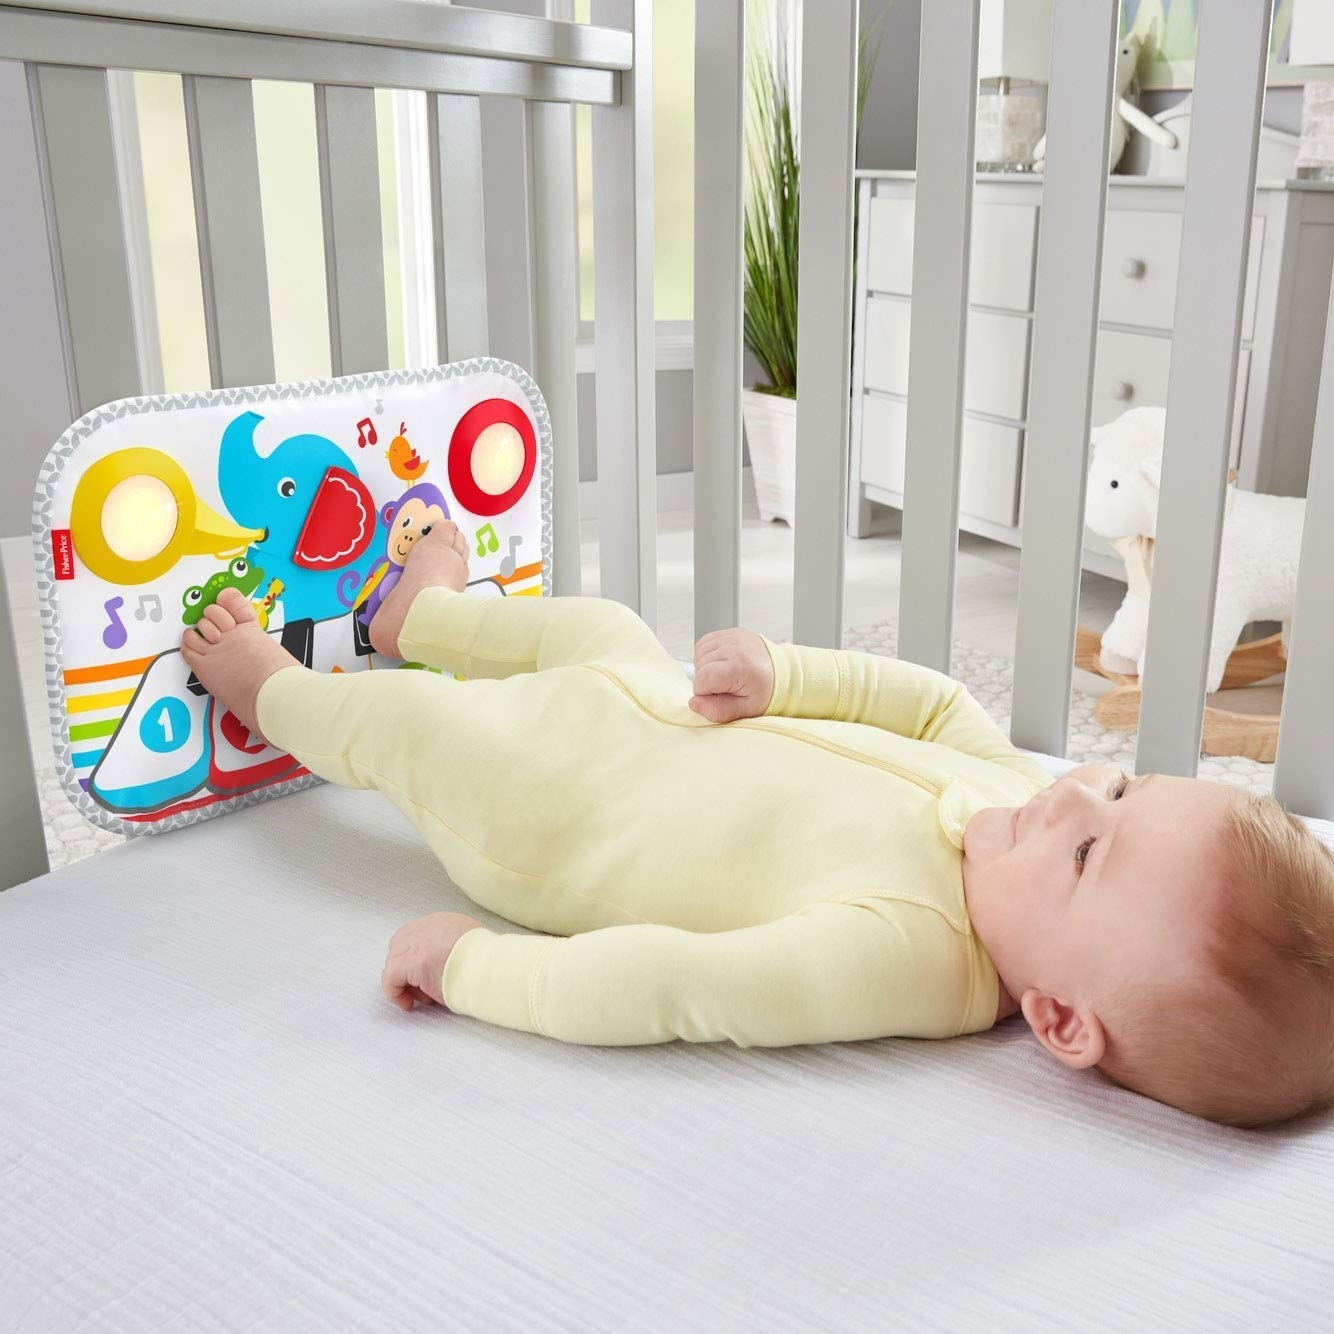 A child model in a crib playing the colorful piano with their feet